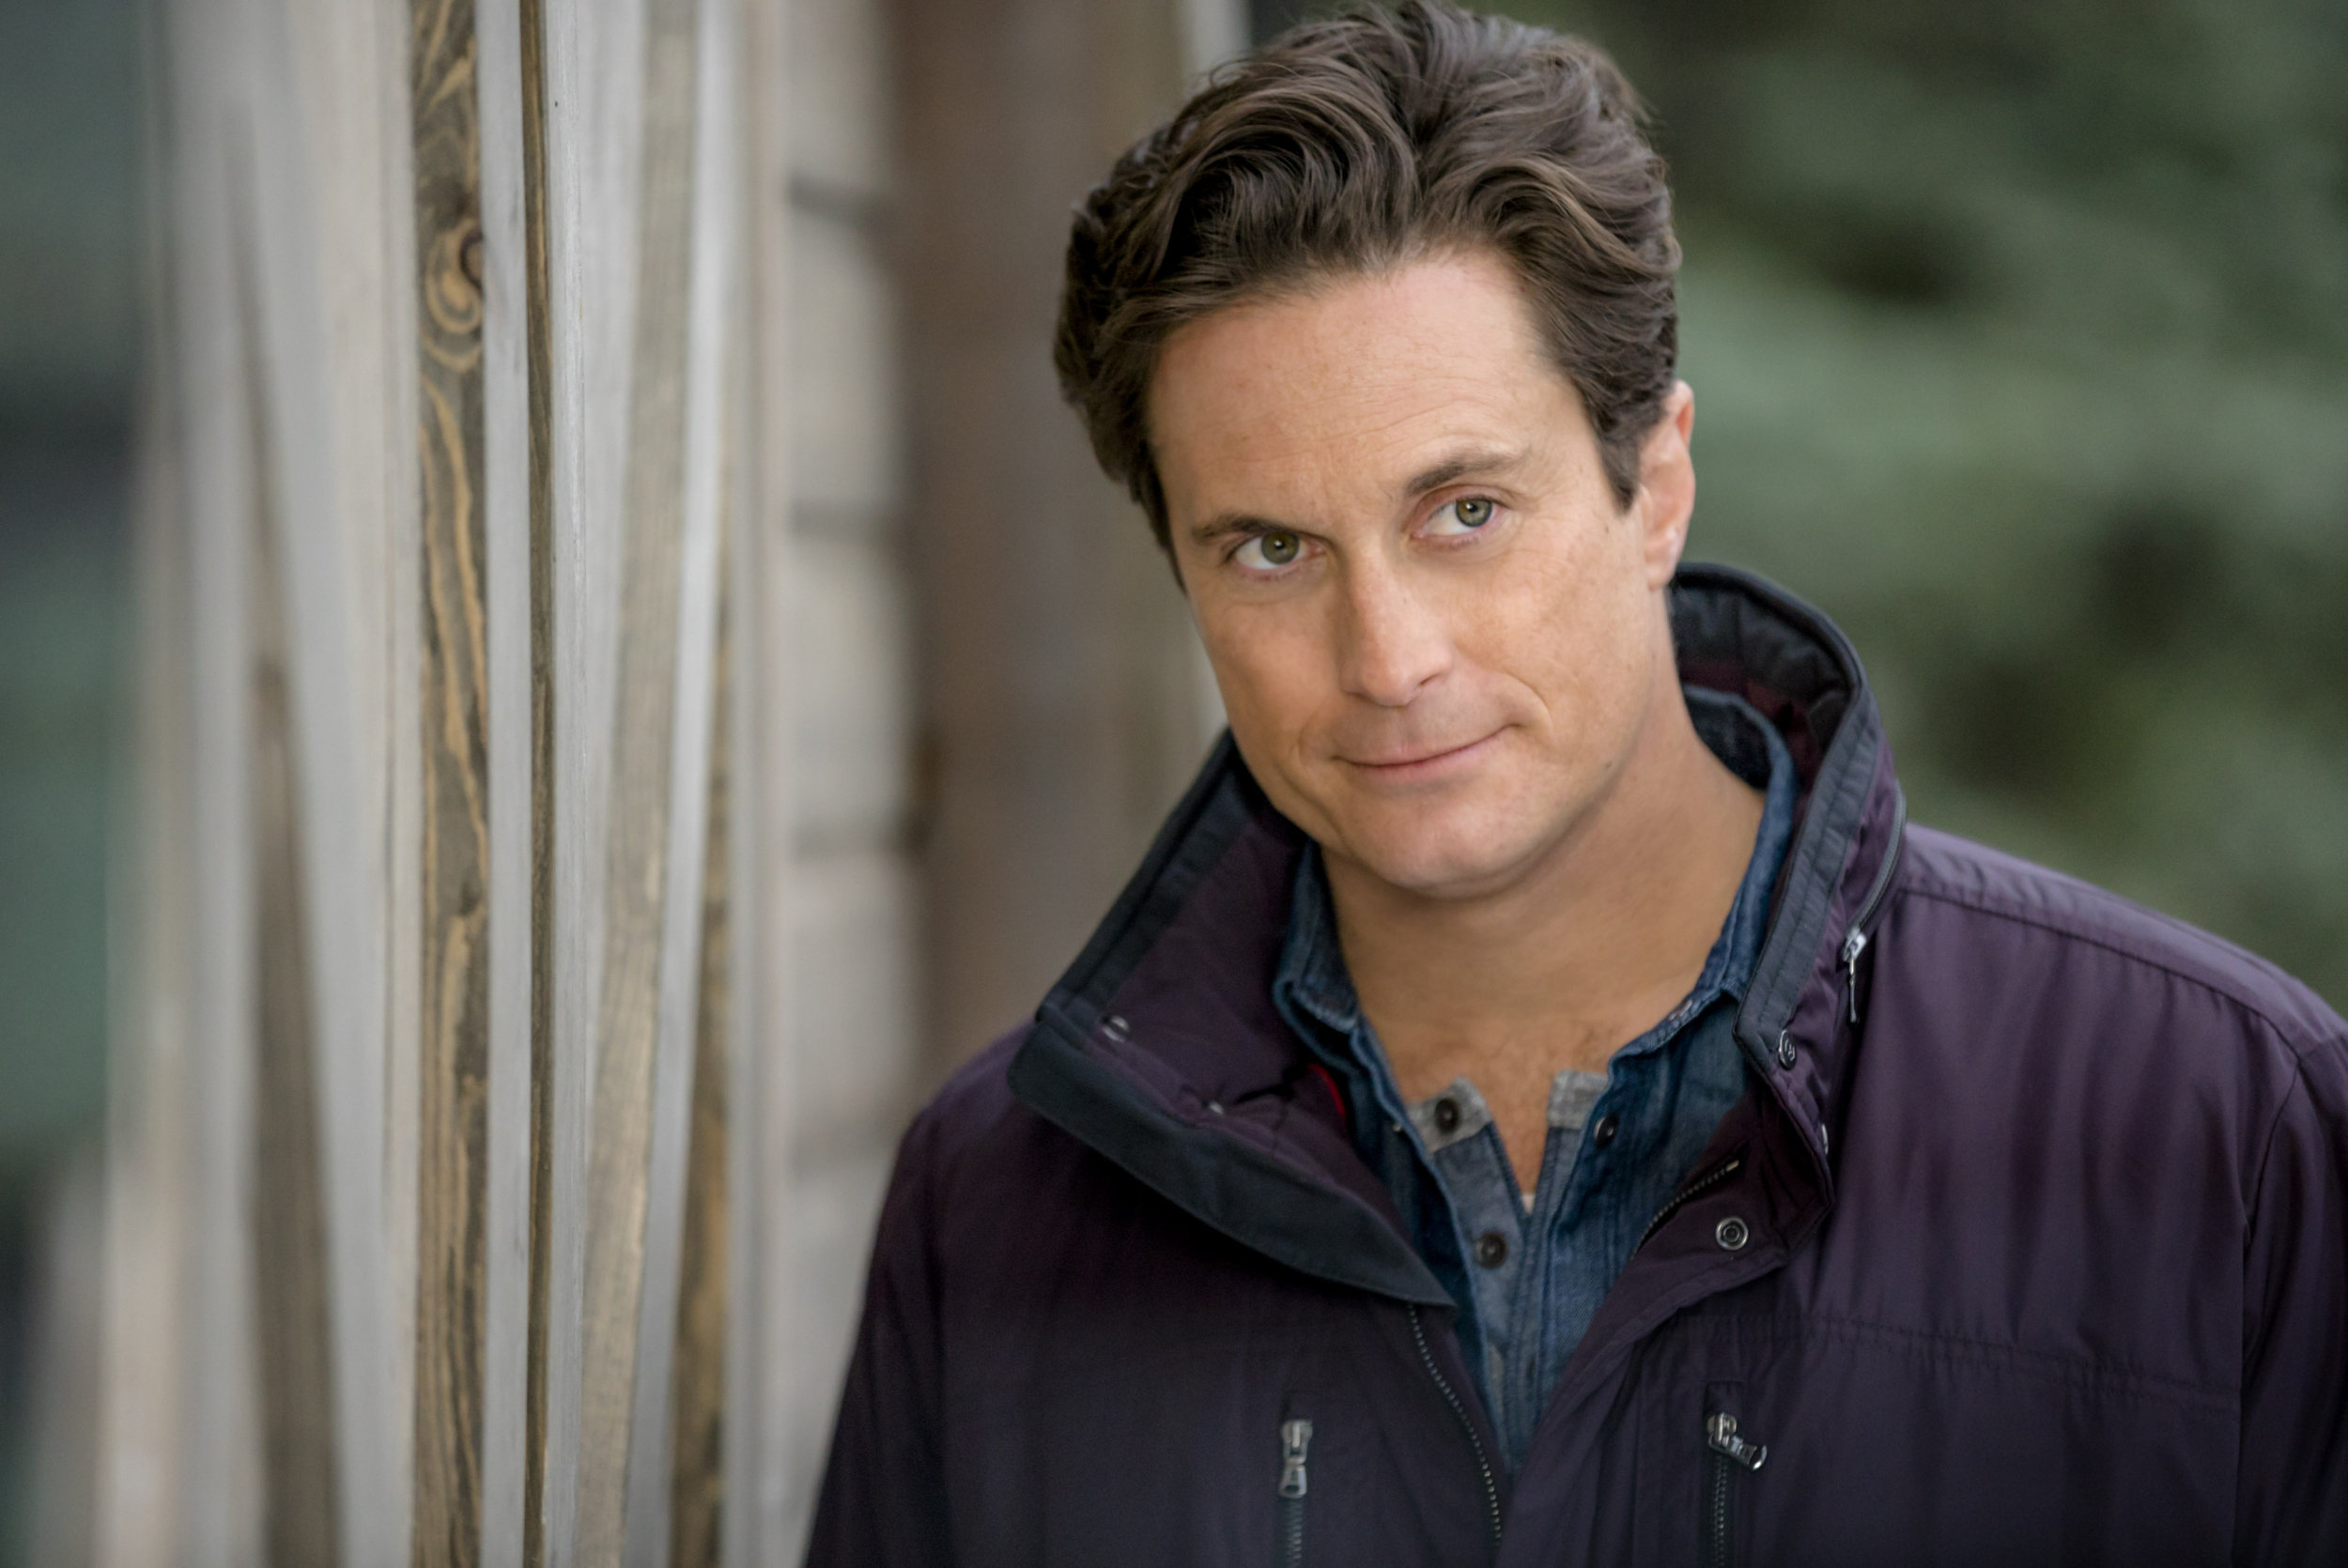 Journey Back To Christmas.Oliver Hudson On Journey Back To Christmas Hallmark Movies